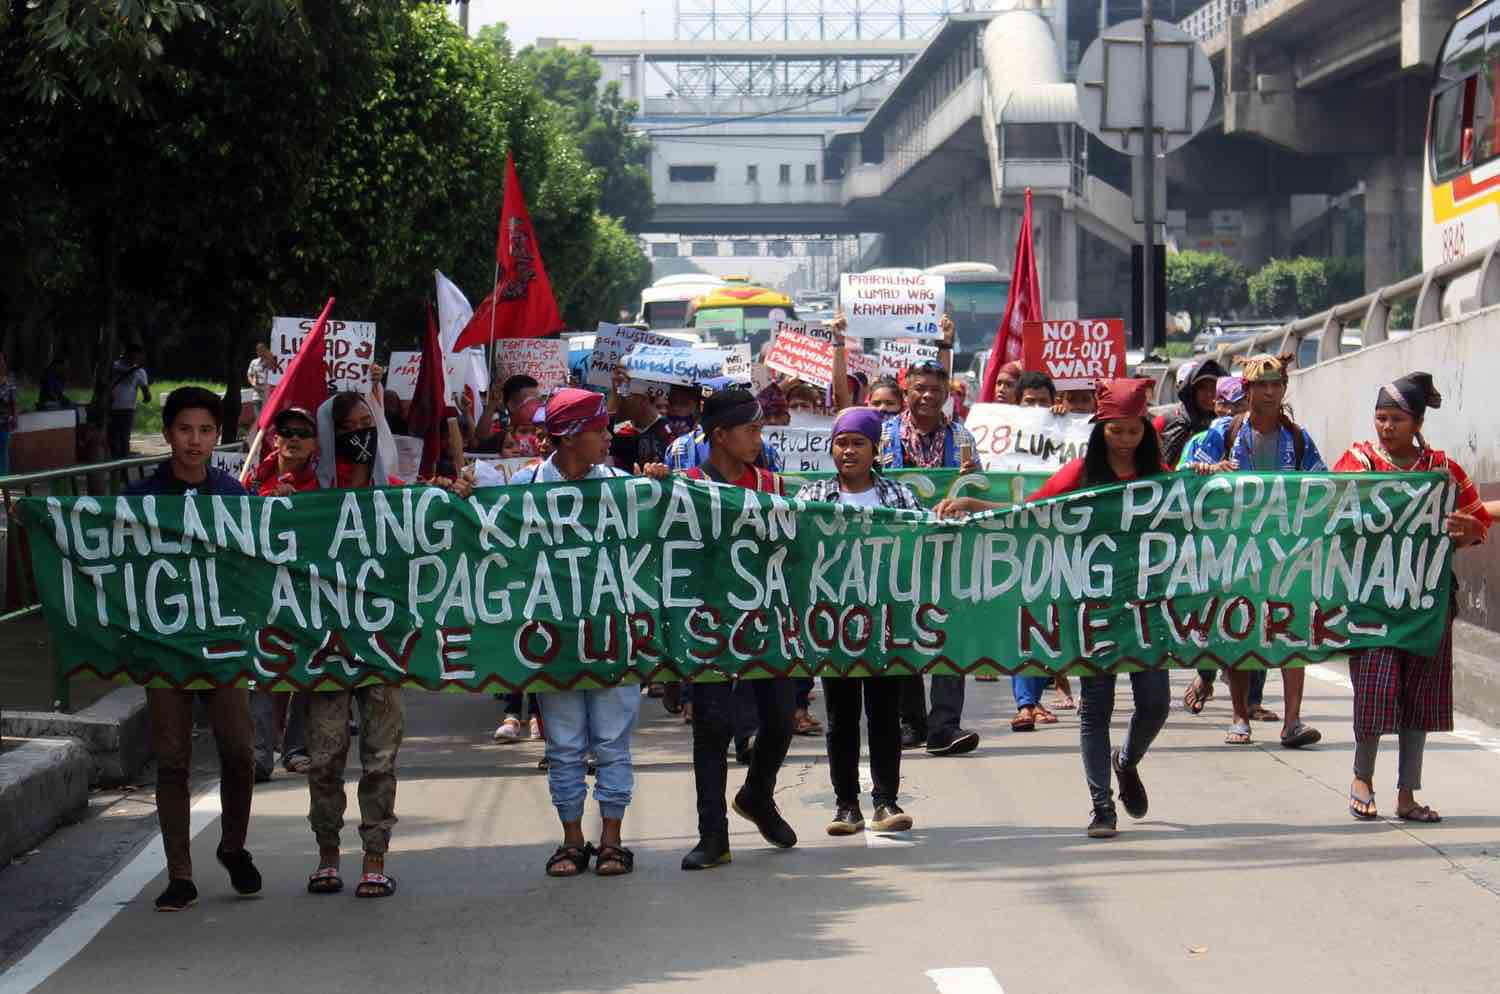 SAVE LUMAD SCHOOLS. The Lumad from Mindanao hold a rally on August 9, 2017 to protest against the alleged military attacks on Lumad schools and communities, slamming President Rodrigo Duterte's earlier statement that he will order the military to 'bomb lumad schools'. Photo by Darren Langit/Rappler